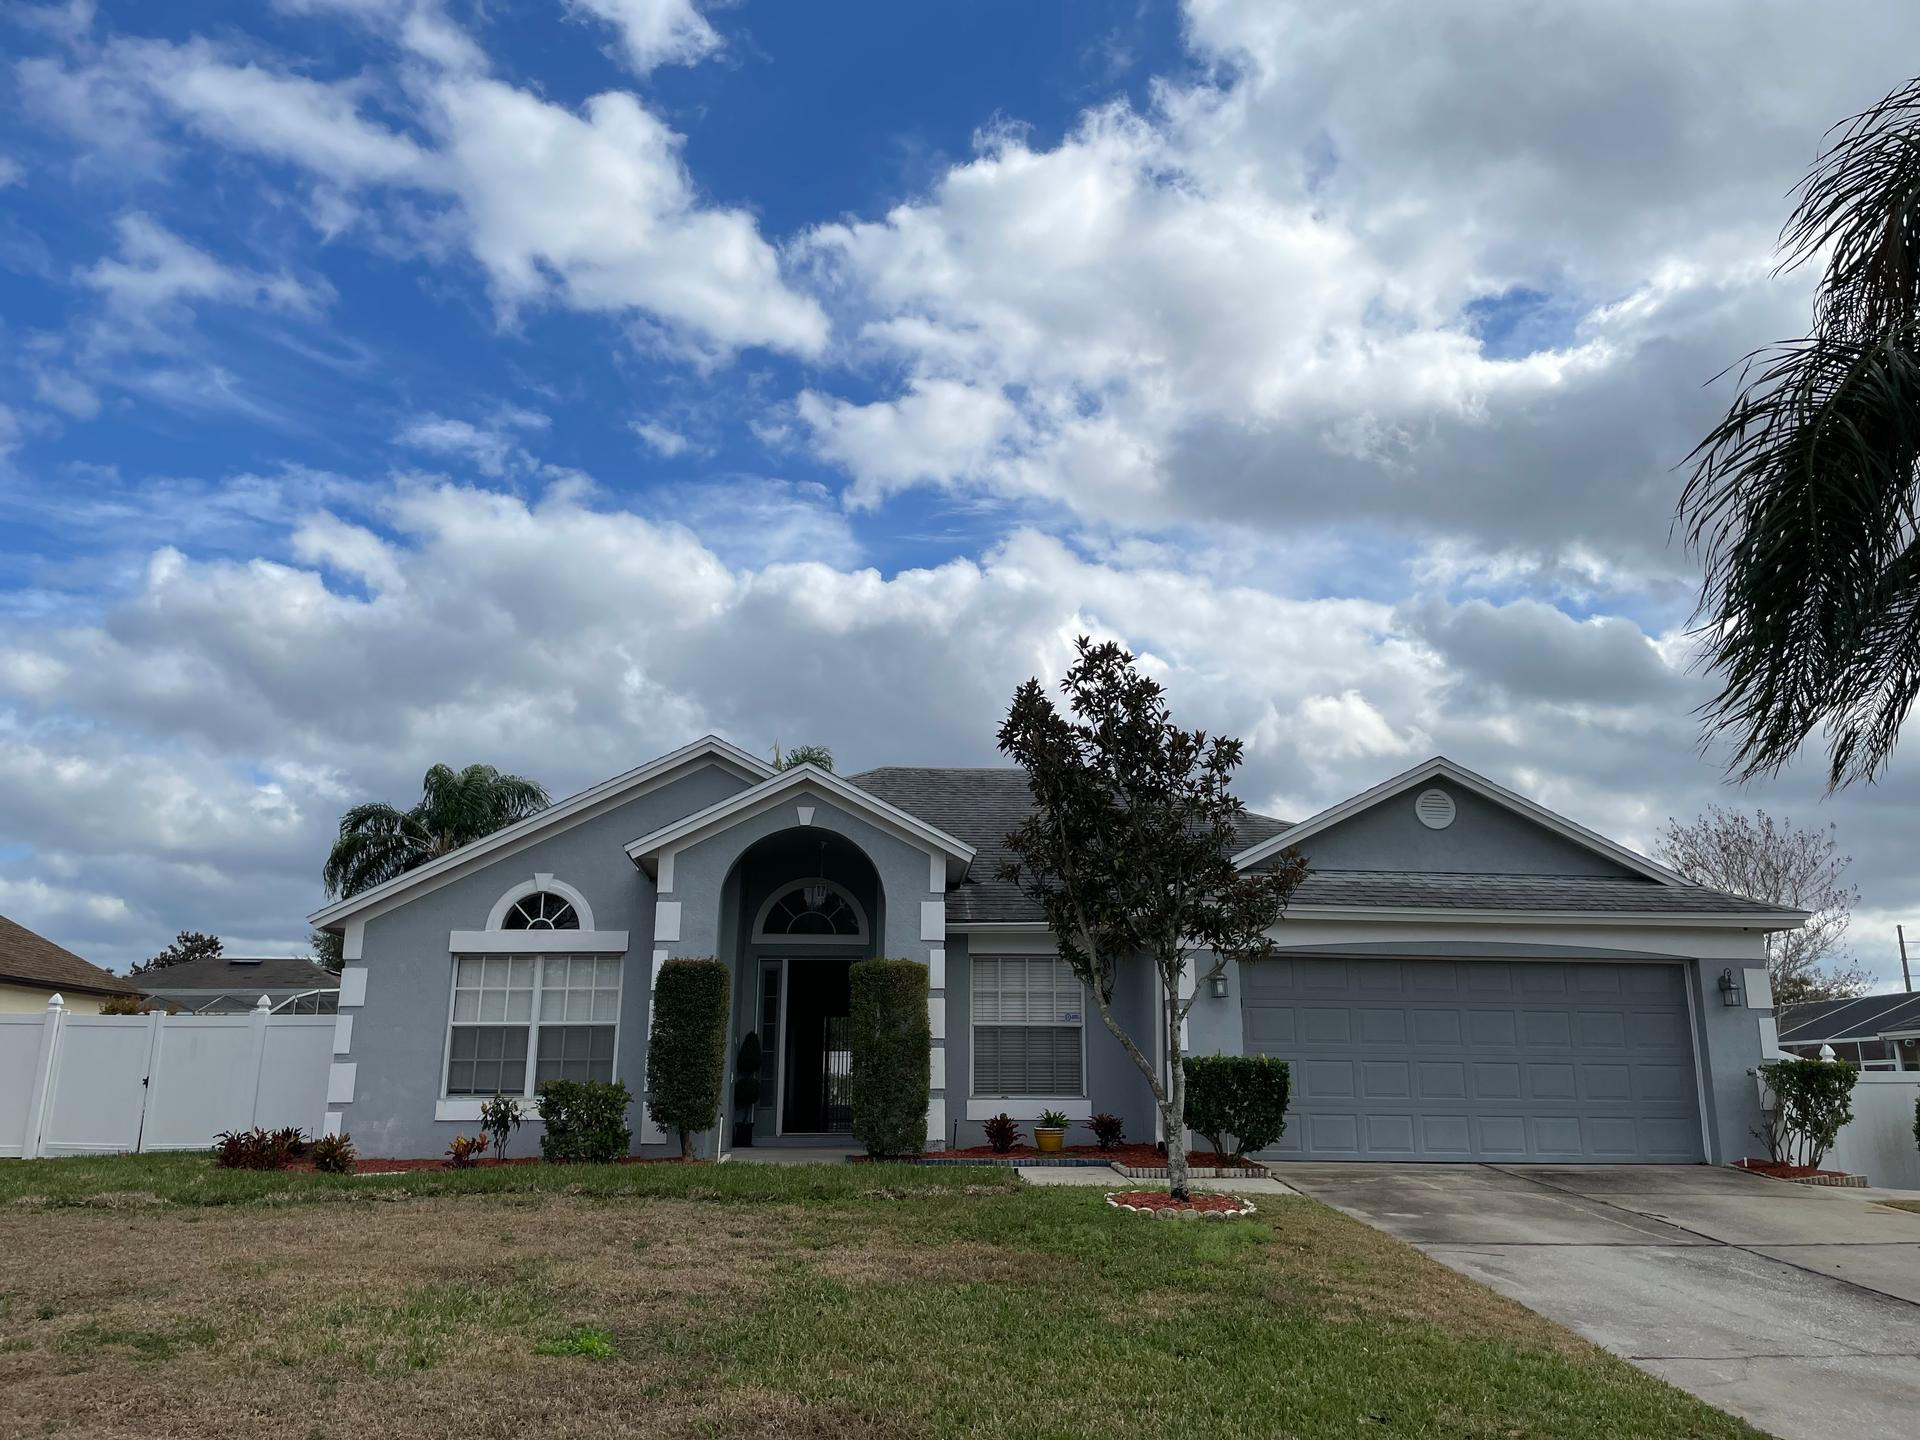 Photo of property: 131 Via Del Sol Dr Davenport Fl 33896